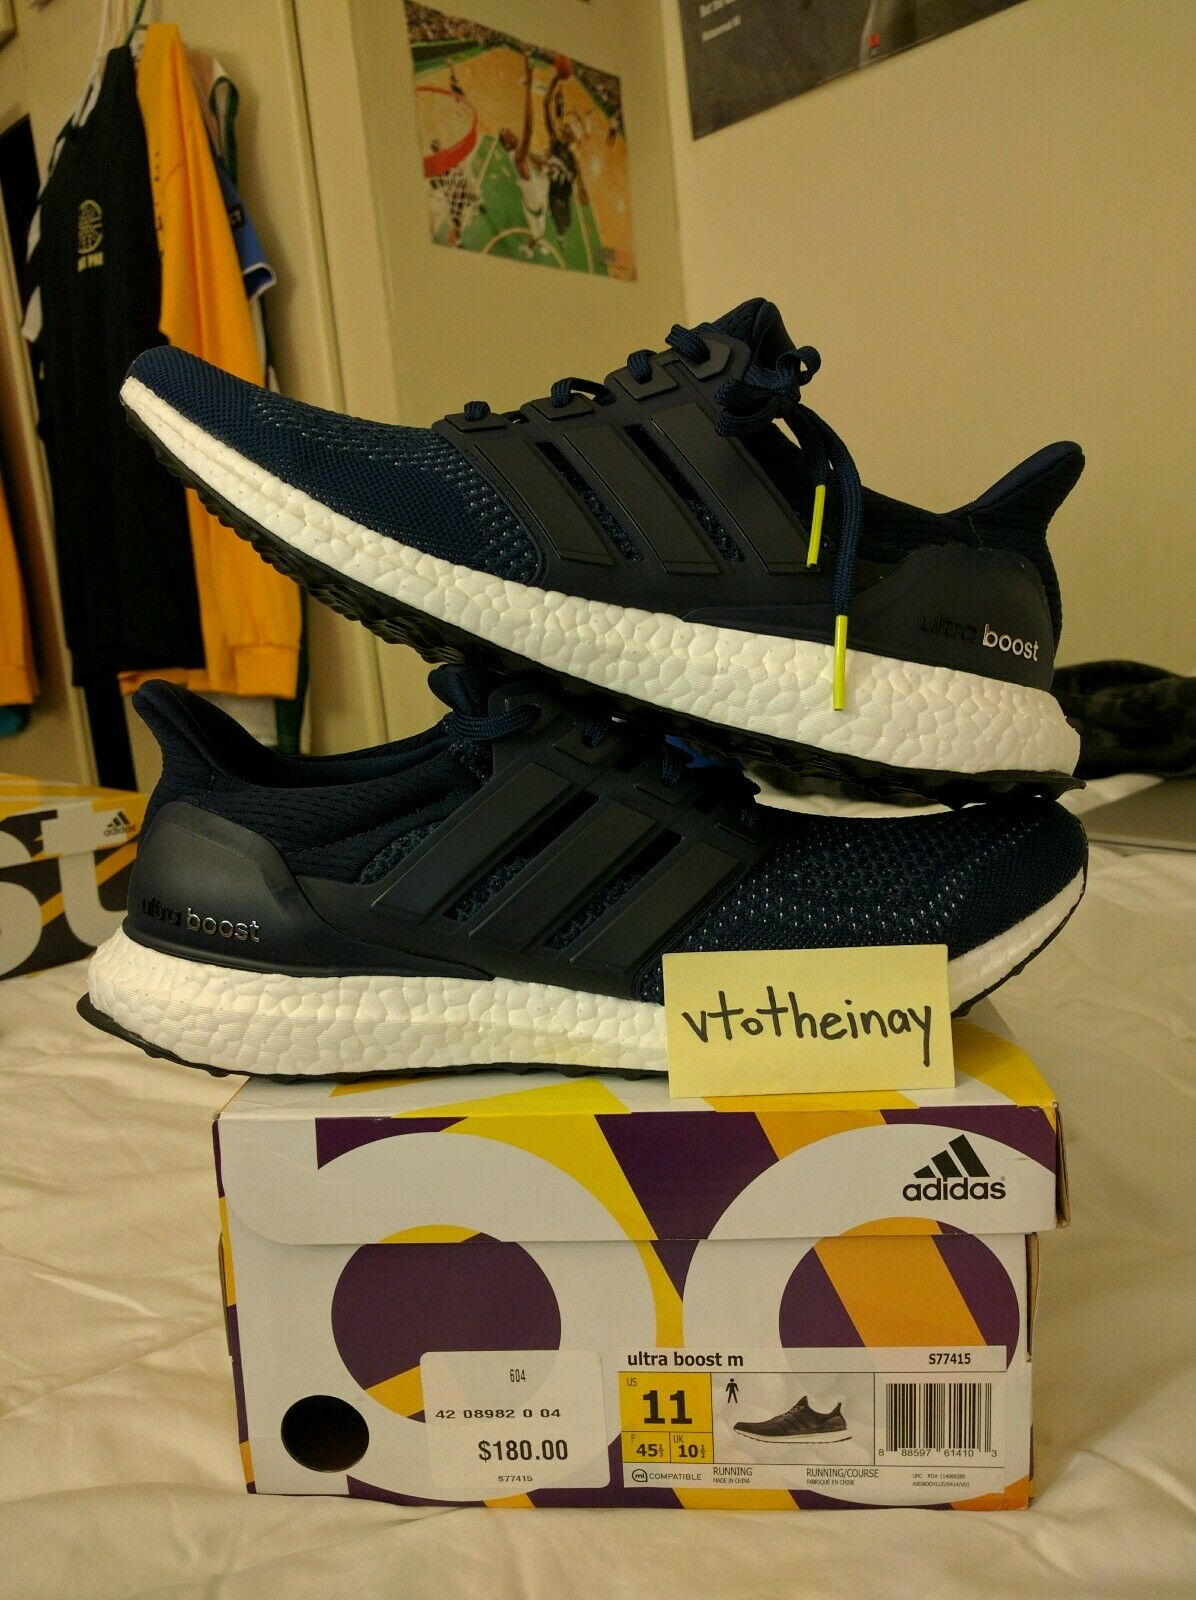 Adidas Ultra Boost Navy 1.0 S77415 DS sz 11 12 sns hypebeast